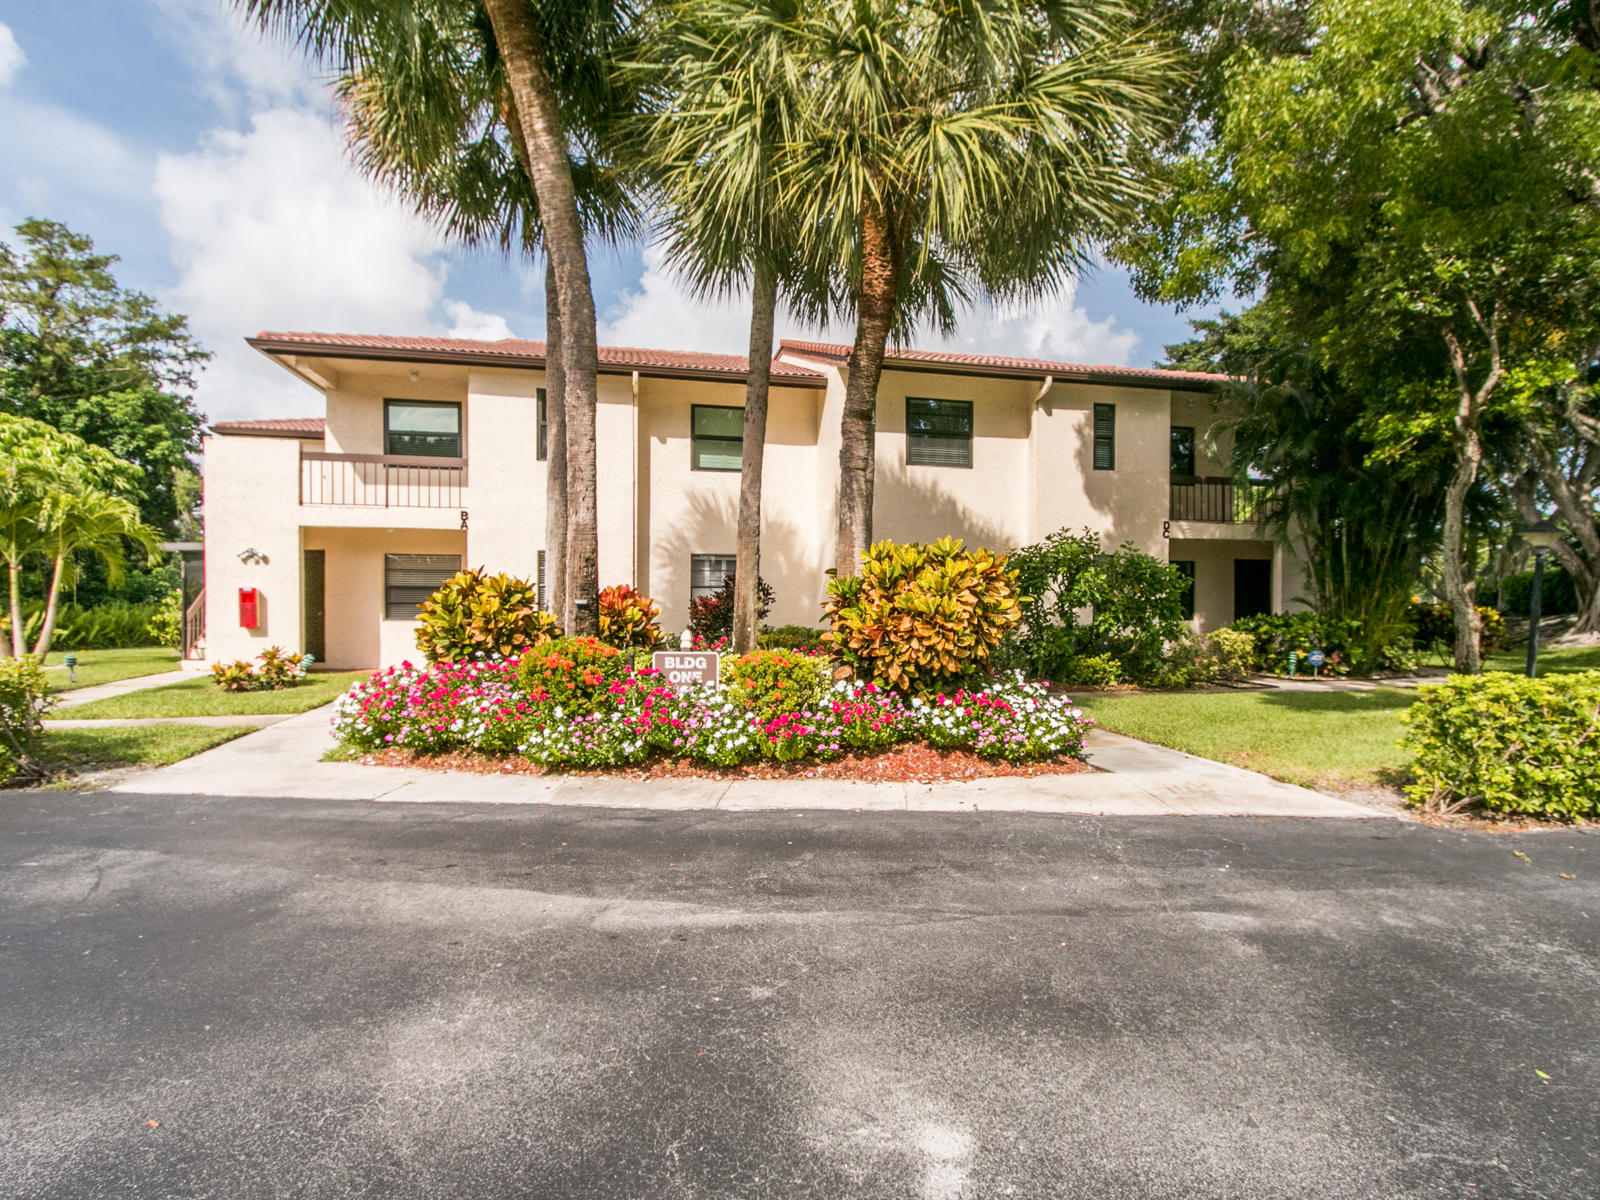 Photo of 21669 Tall Palm Circle #1a, Boca Raton, FL 33433